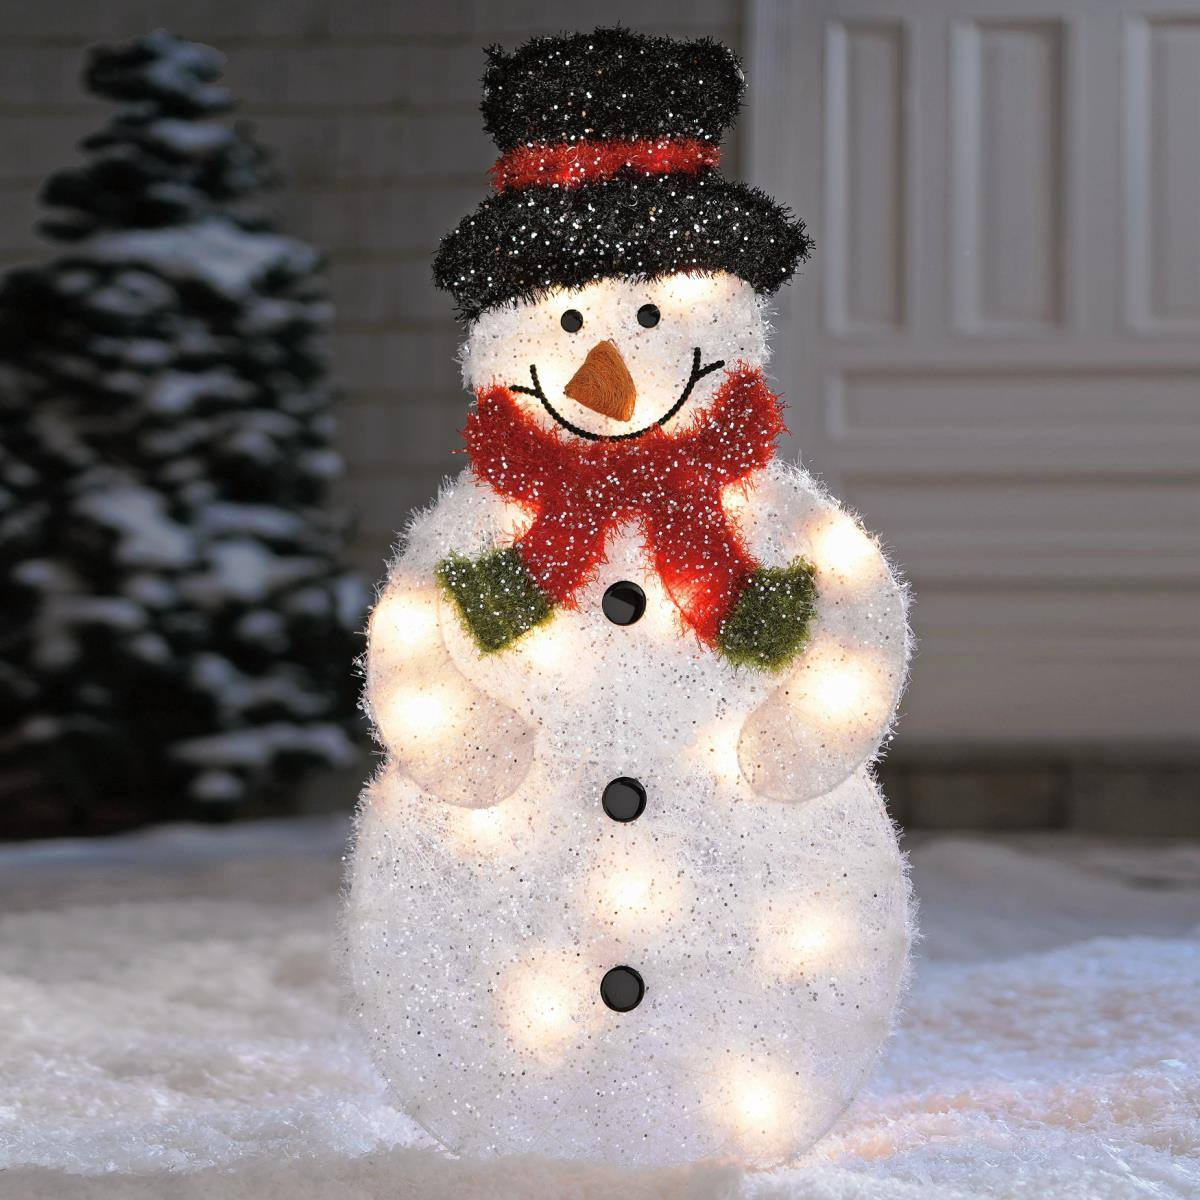 Best Christmas Theme Party Idea   Christmas Celebration   All about     Snowman decoration  snowman